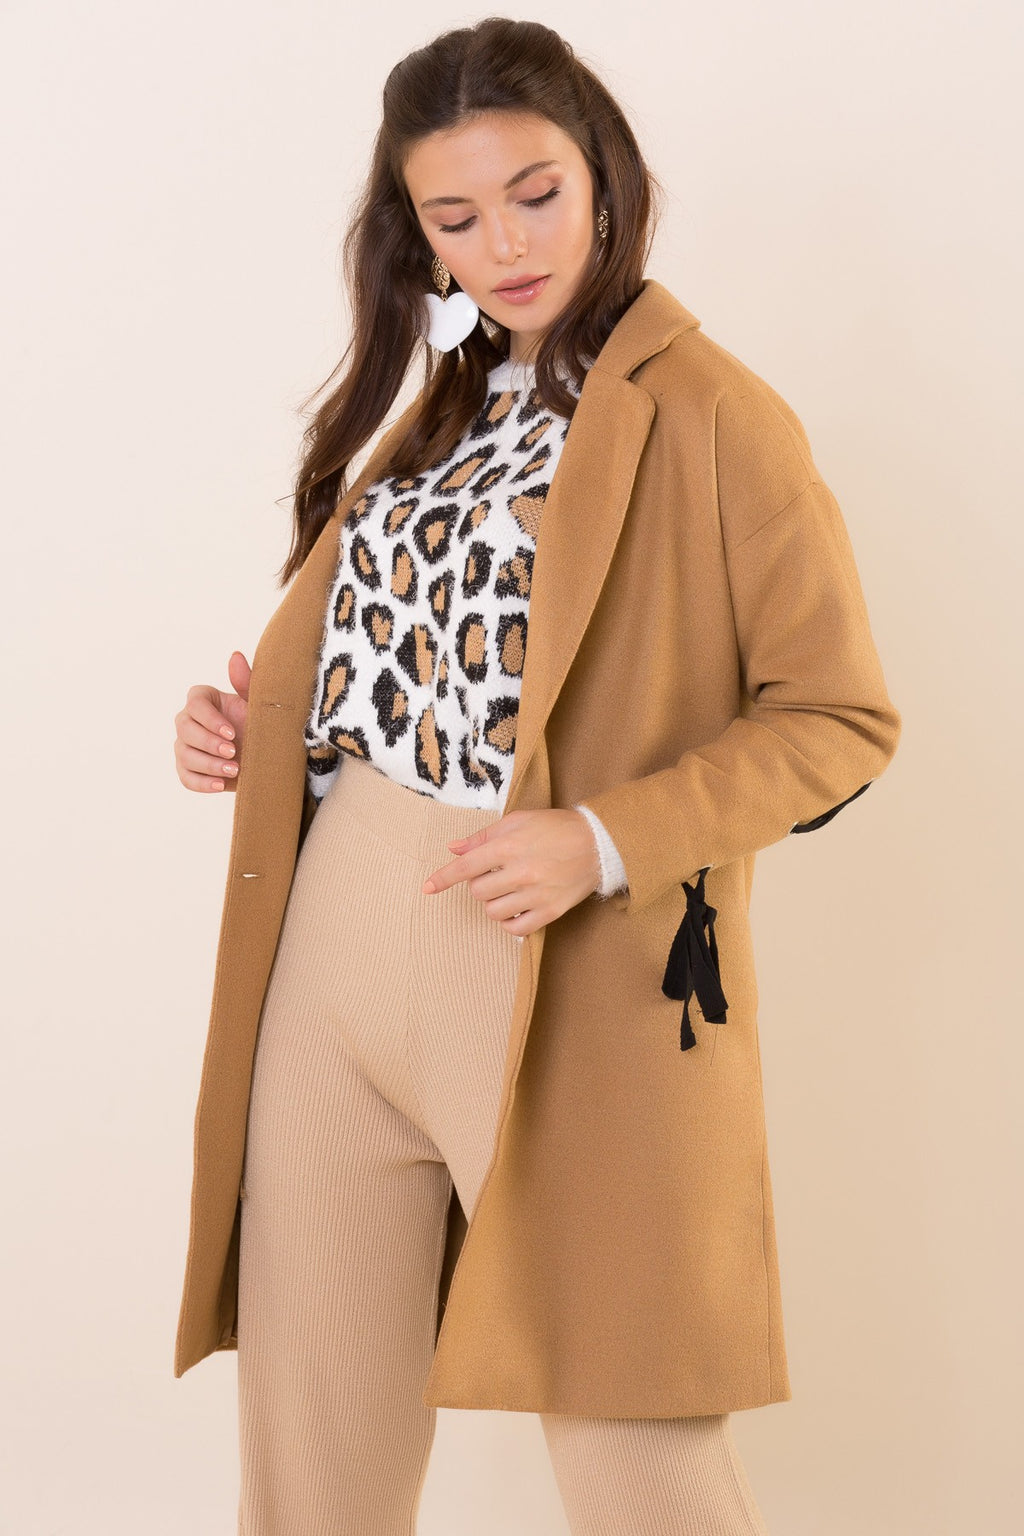 Jacket Collar Lace-up Brown Coat